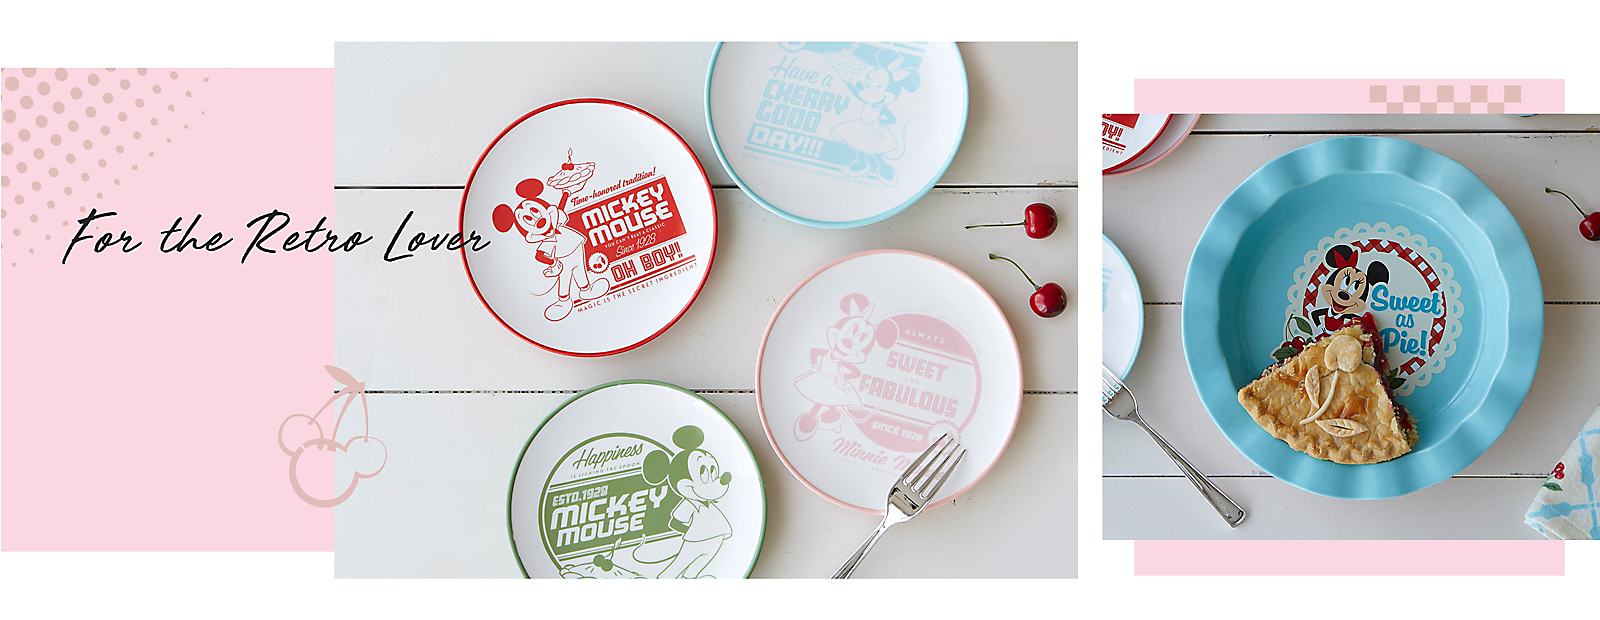 For the Retro Lover Disney Back in the Day dinnerware set